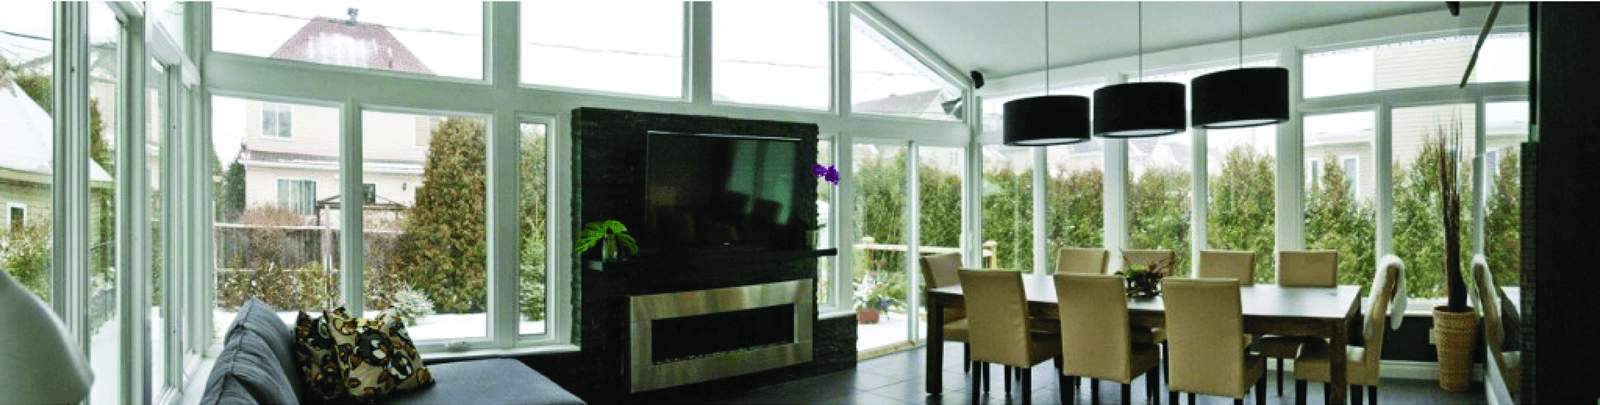 Sunrooms Of Pittsburgh: Butler, PA »Sunrooms Of Pittsburgh: Butler, PA »Pro  Home U0026 Sunroom